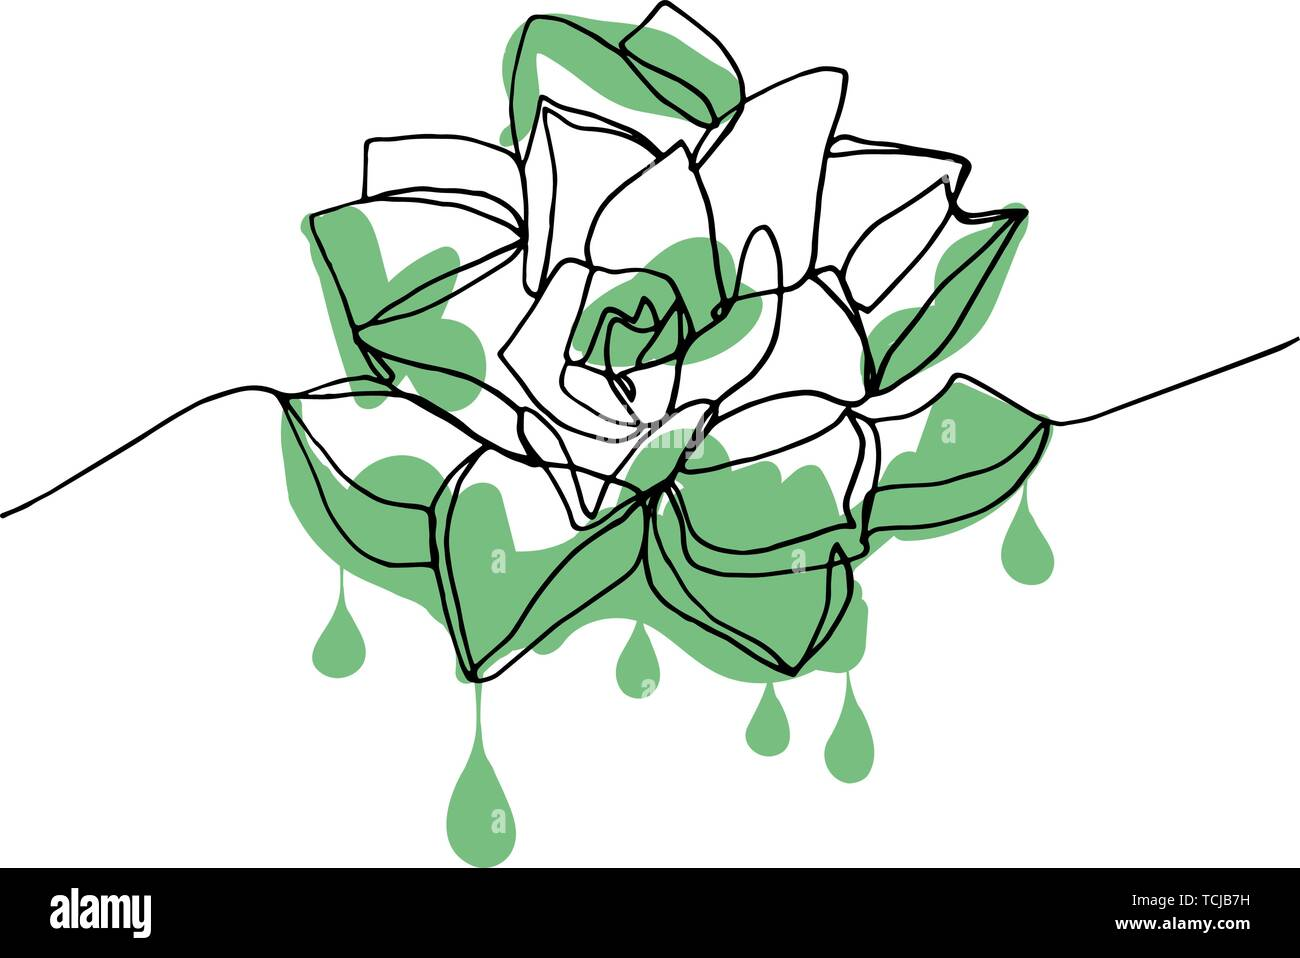 Hand Drawn Minimalistic Succulent With Dripping Green Pain One Single Continuous Black Line Simple Drawing Isolated On White Background Stock Vecto Stock Vector Image Art Alamy